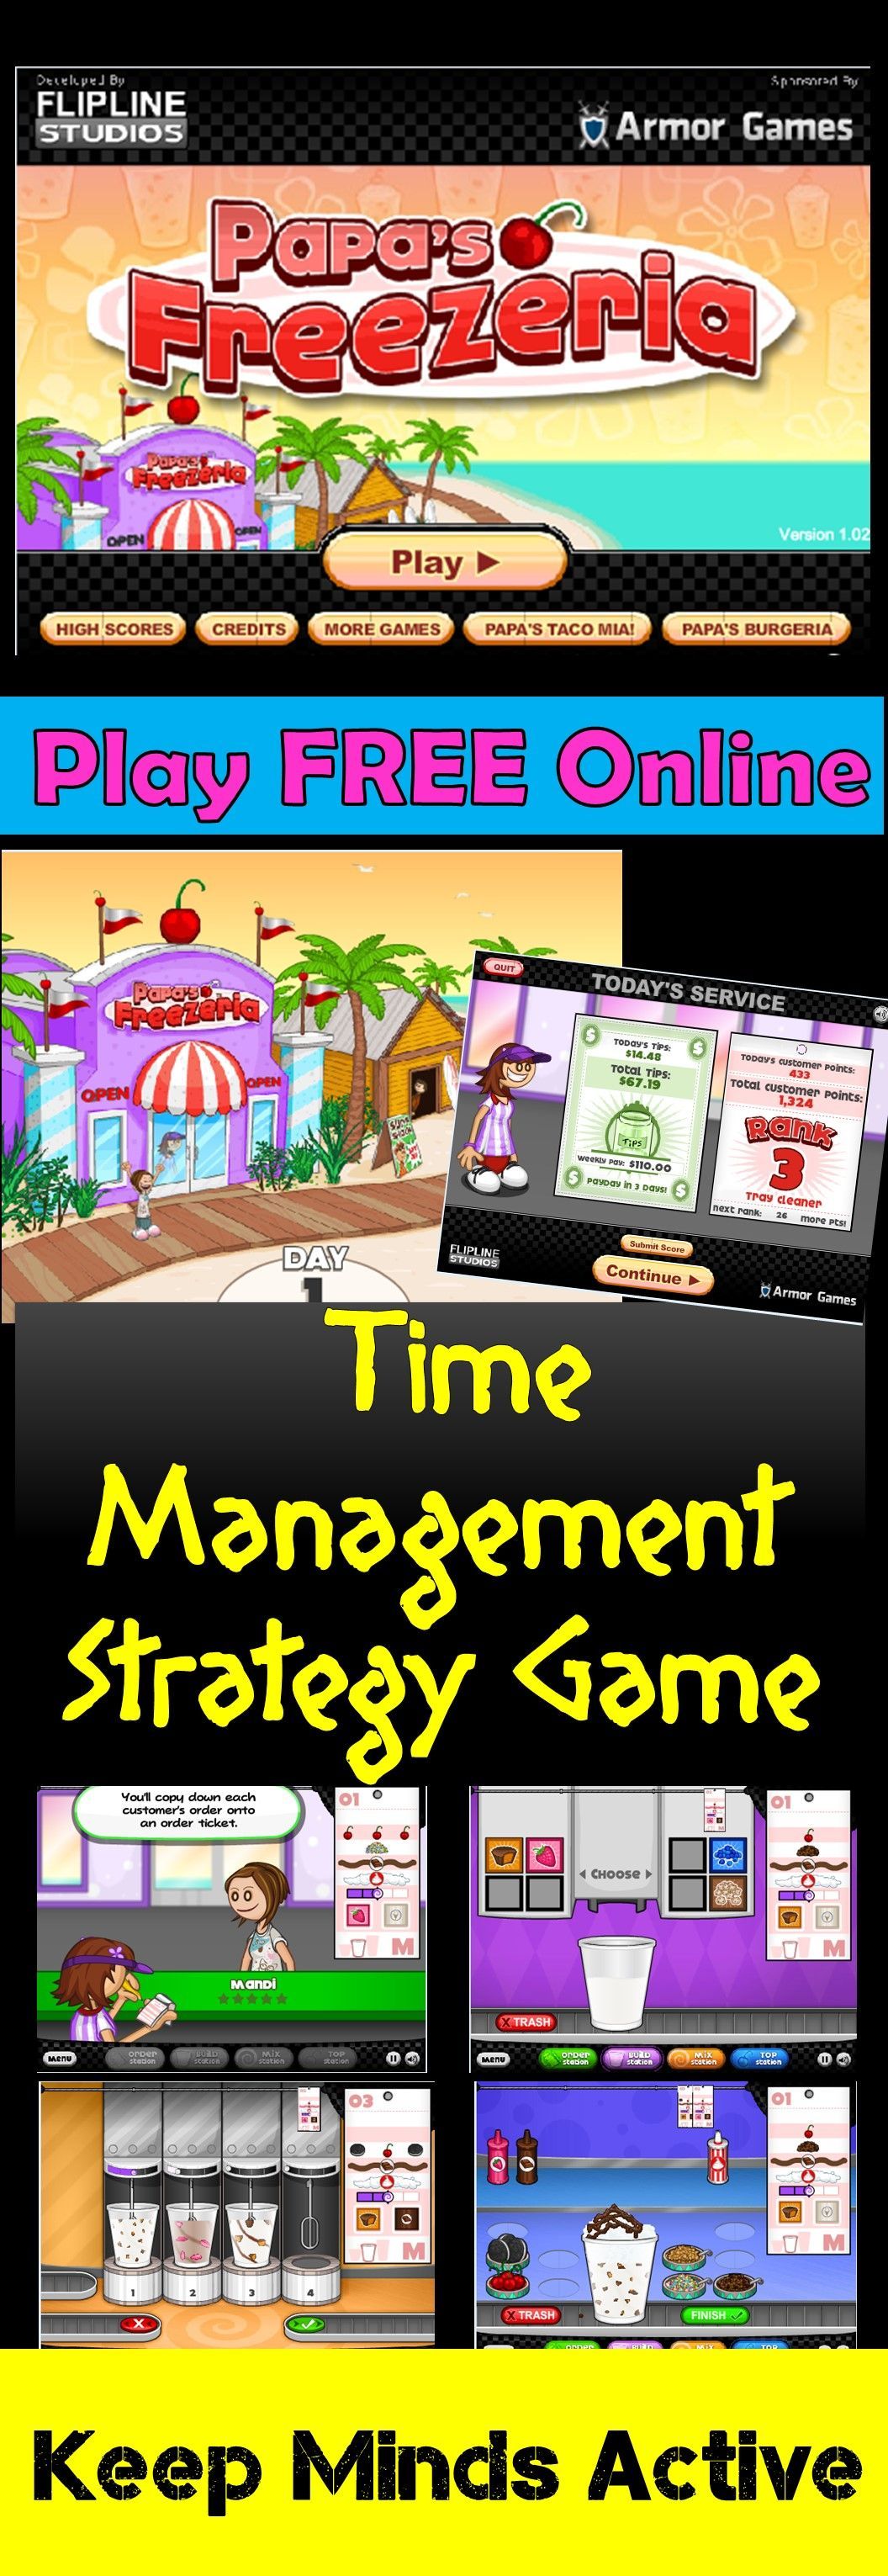 Fun Time Management and Strategy game to keep minds active